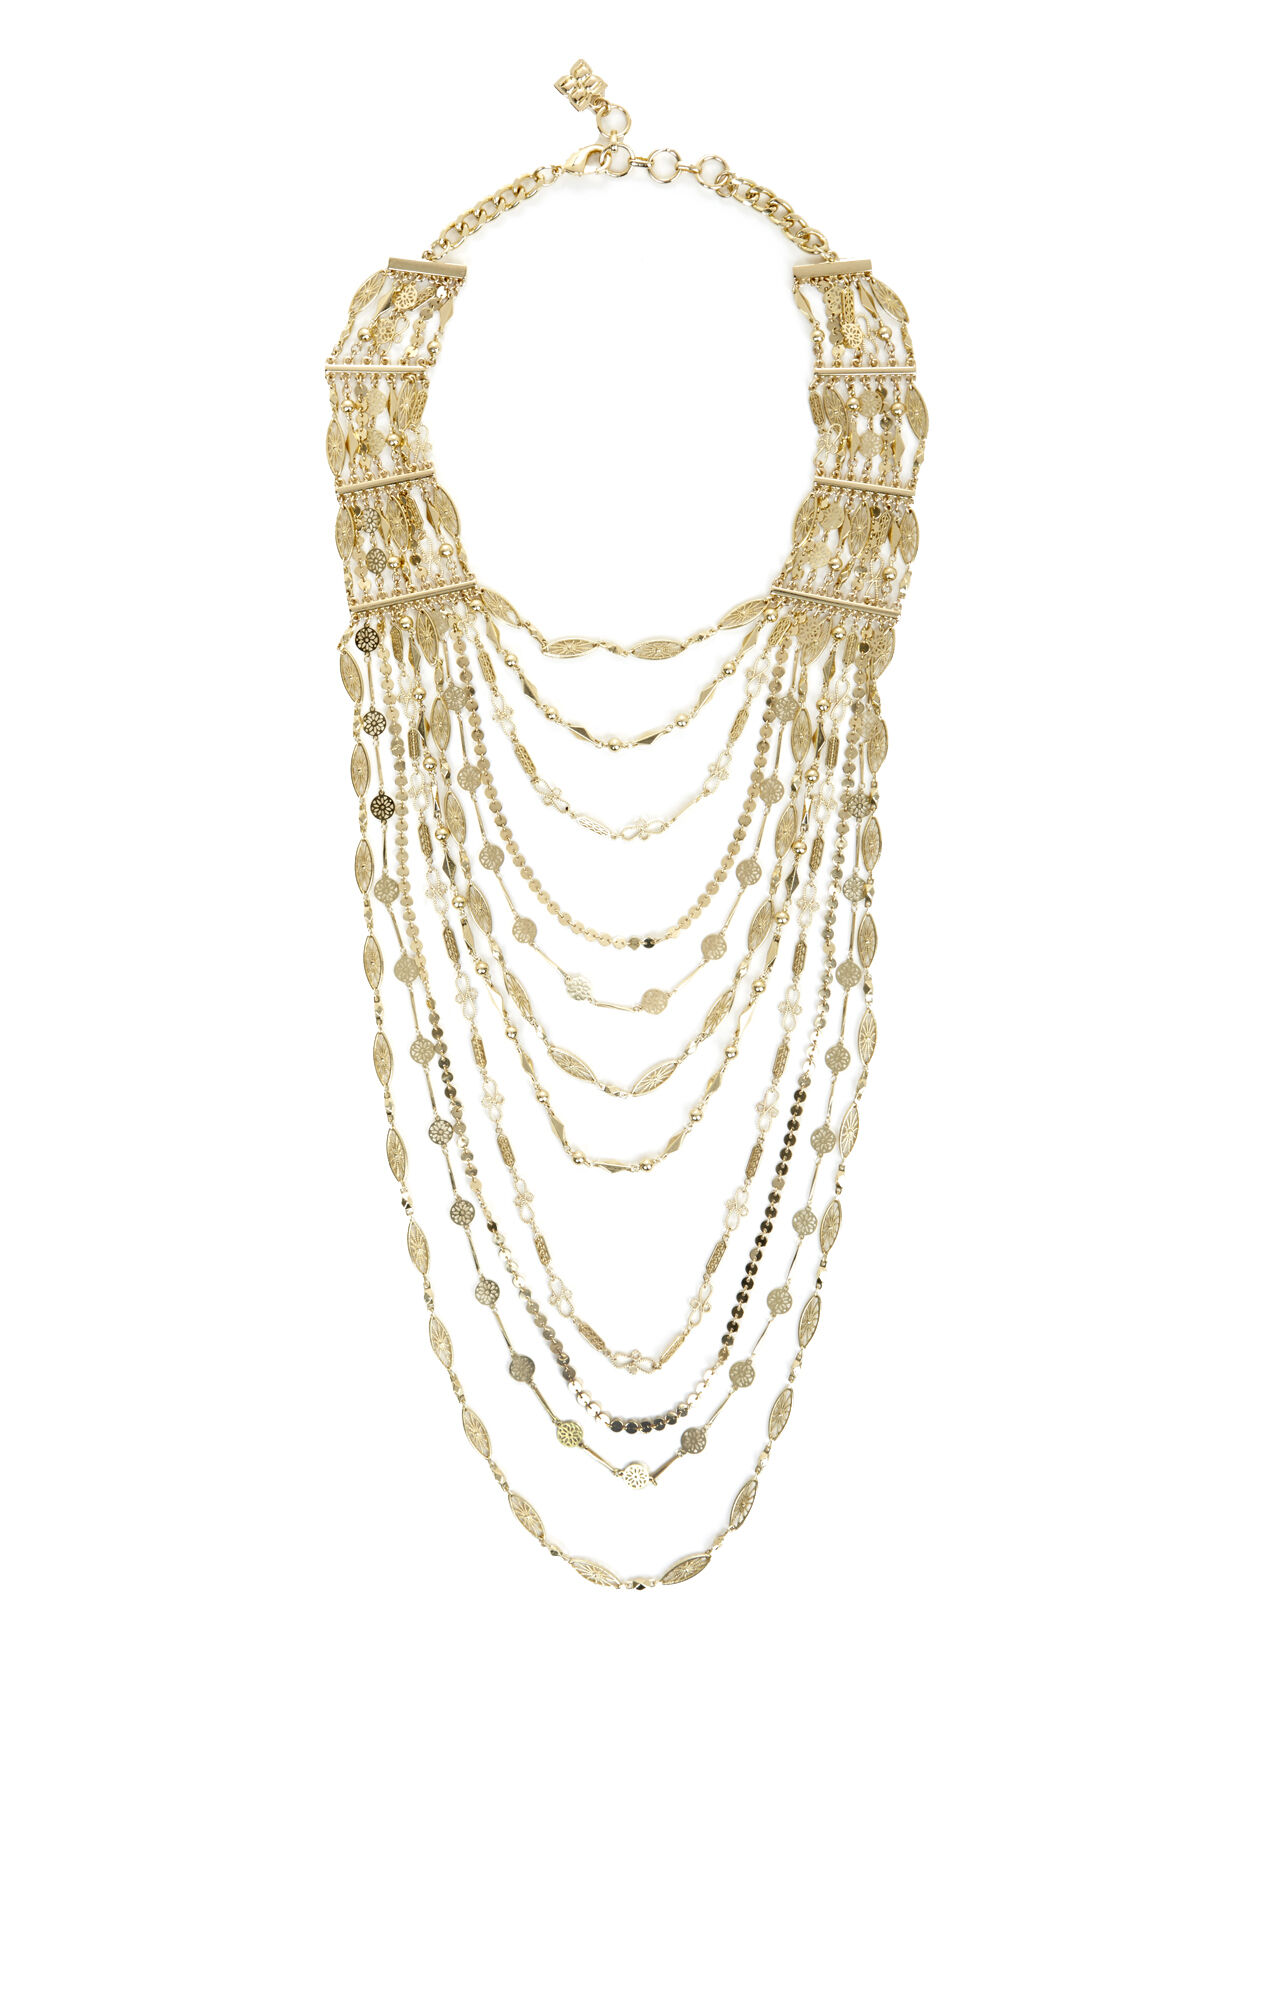 Draped Filigree Chain Necklace